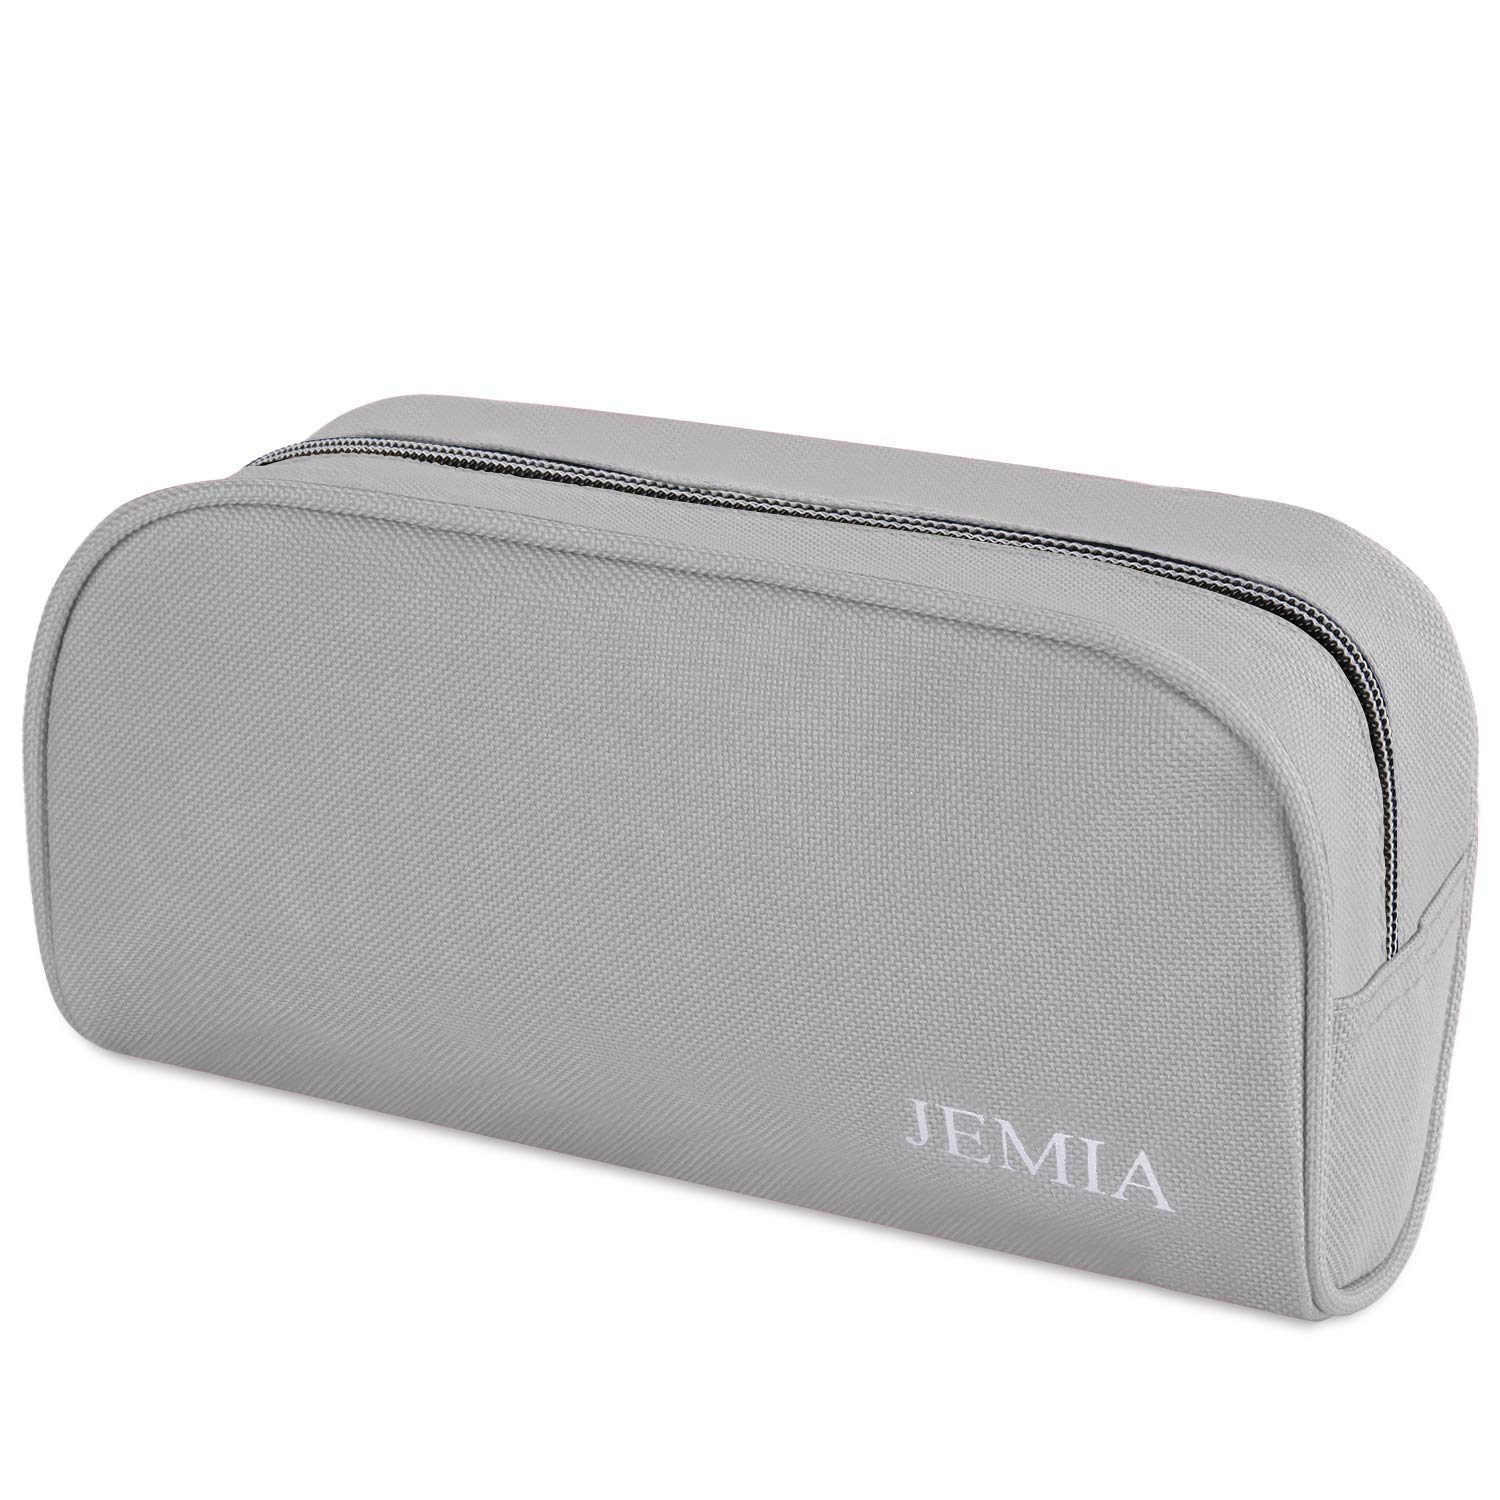 JEMIA Single Compartments Collection 1 Independent Zipper Chambers with Mesh, Zip Pockets Pencil Case (Gray, Polyester)